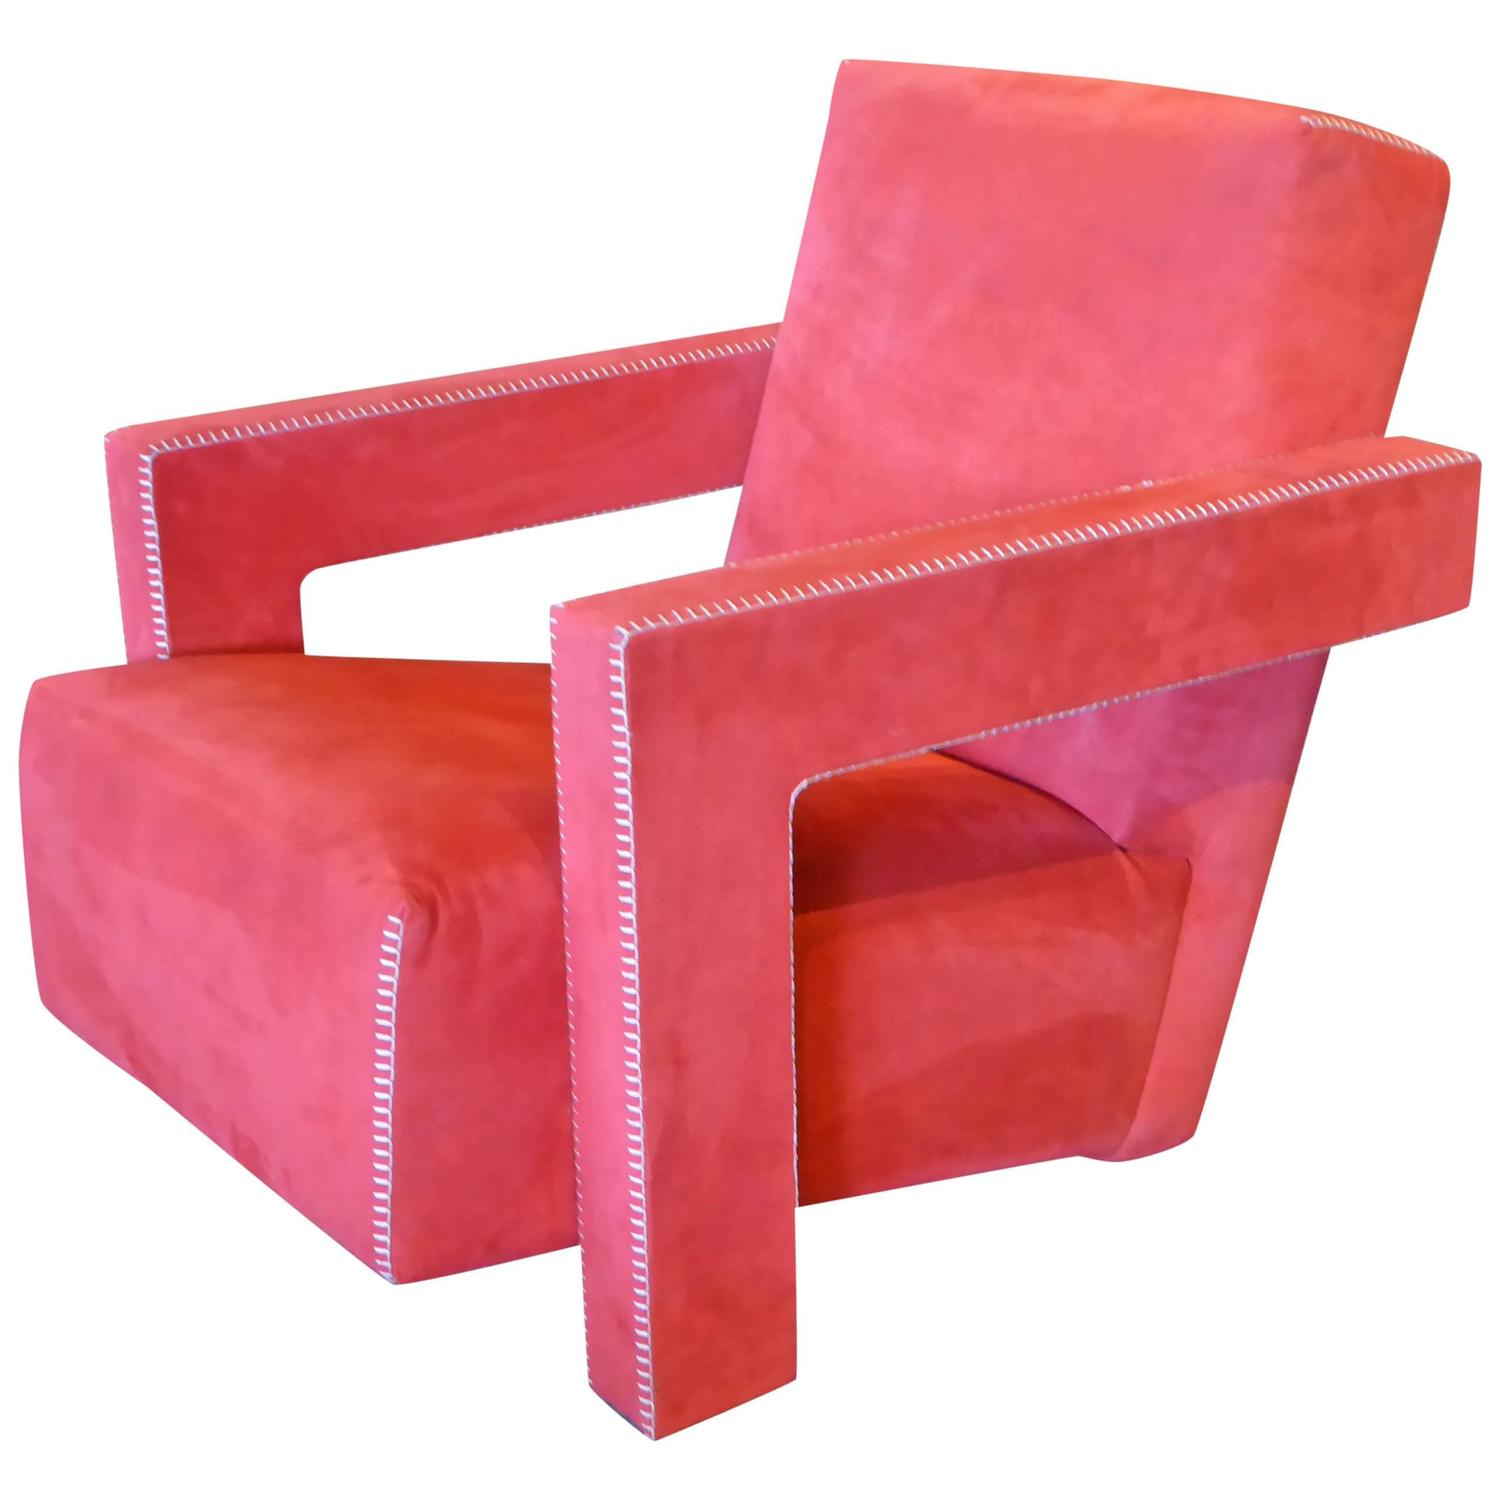 Gerrit Rietveld Utrecht Chair by Cassina at 1stdibs